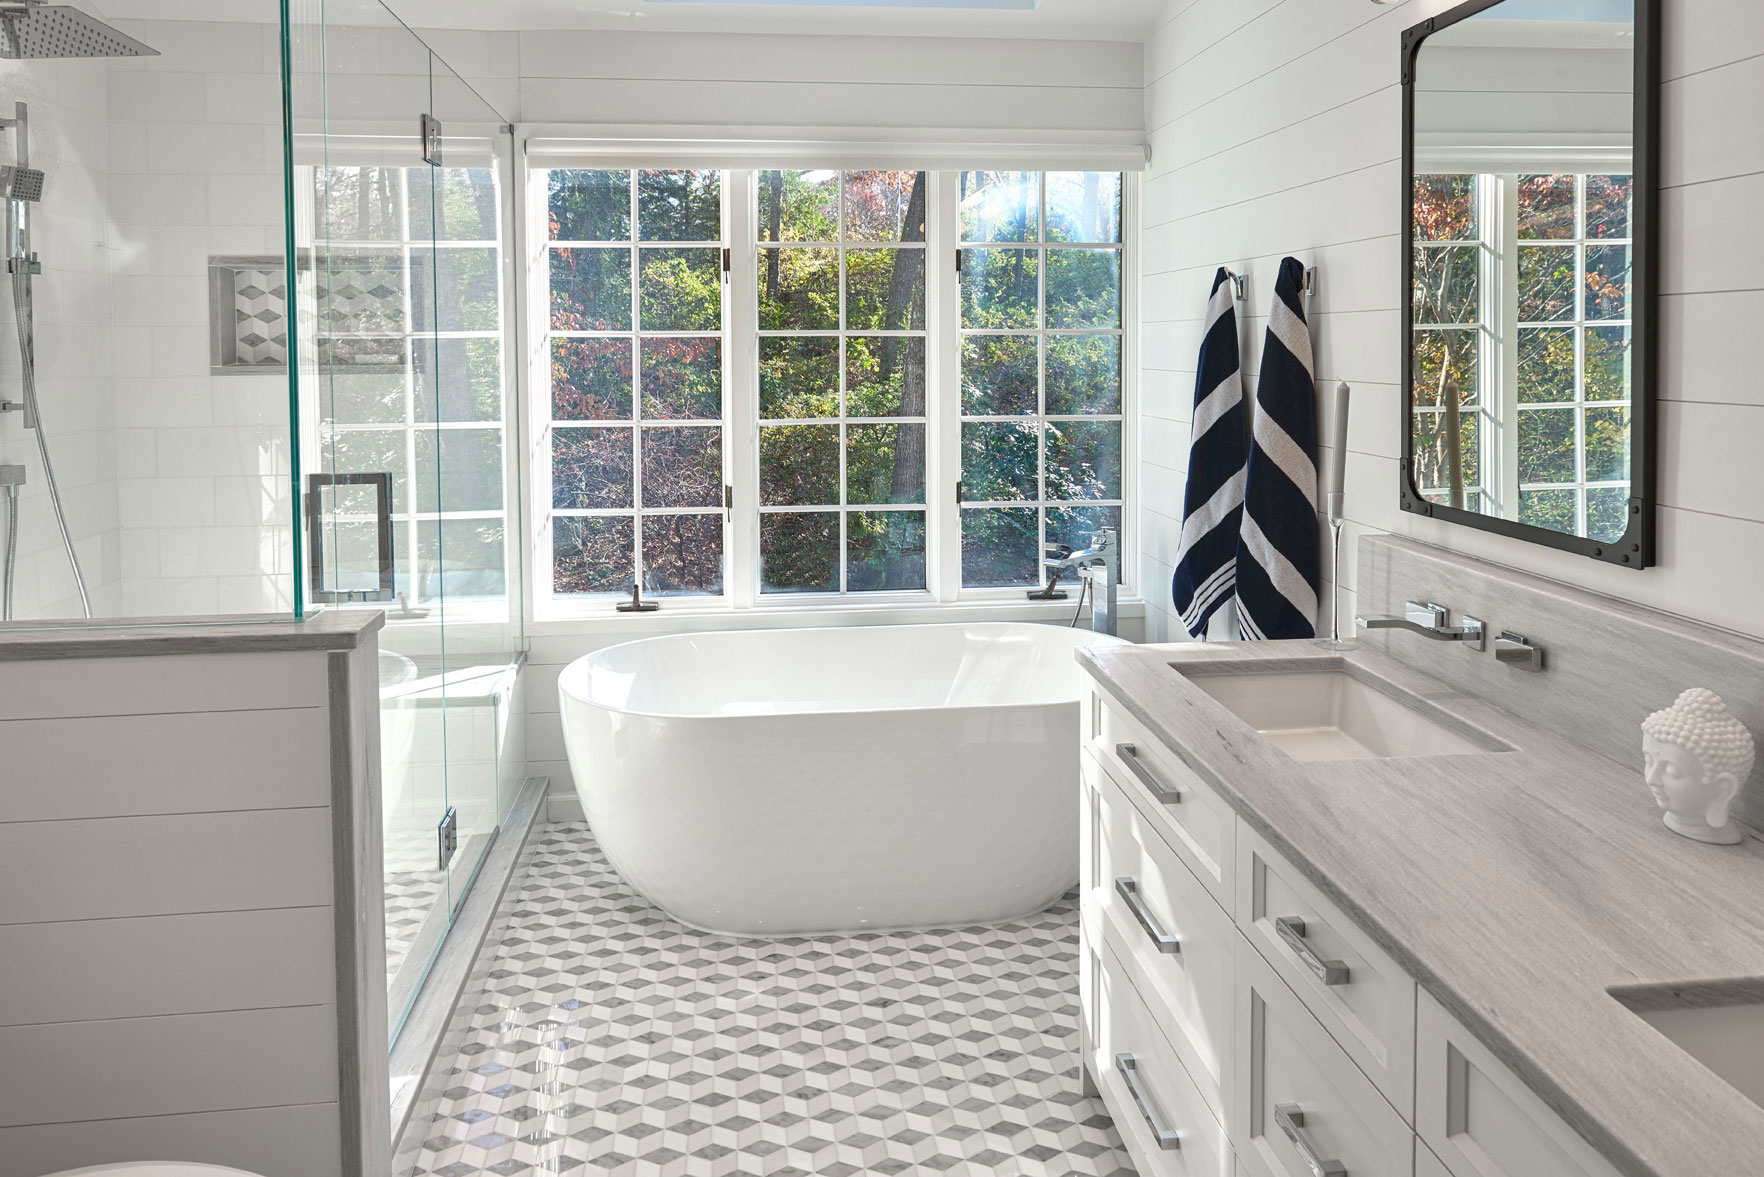 maria-matluck-luxury-bathroom-designer-in-westport-connecticut-1